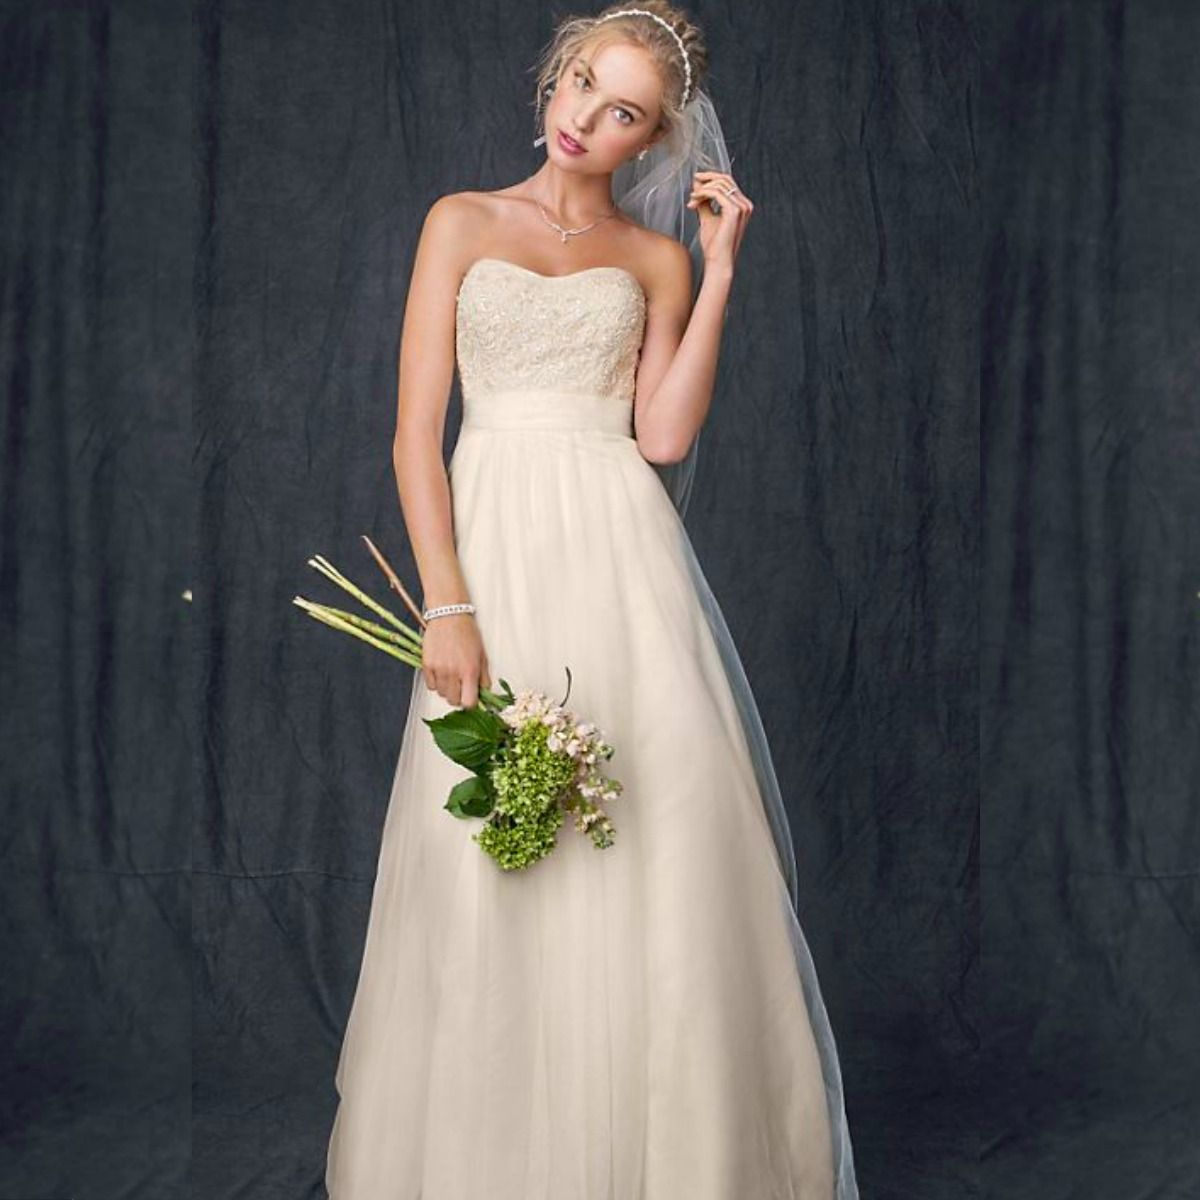 david's bridal wedding dresses just $99 (regularly $400+)